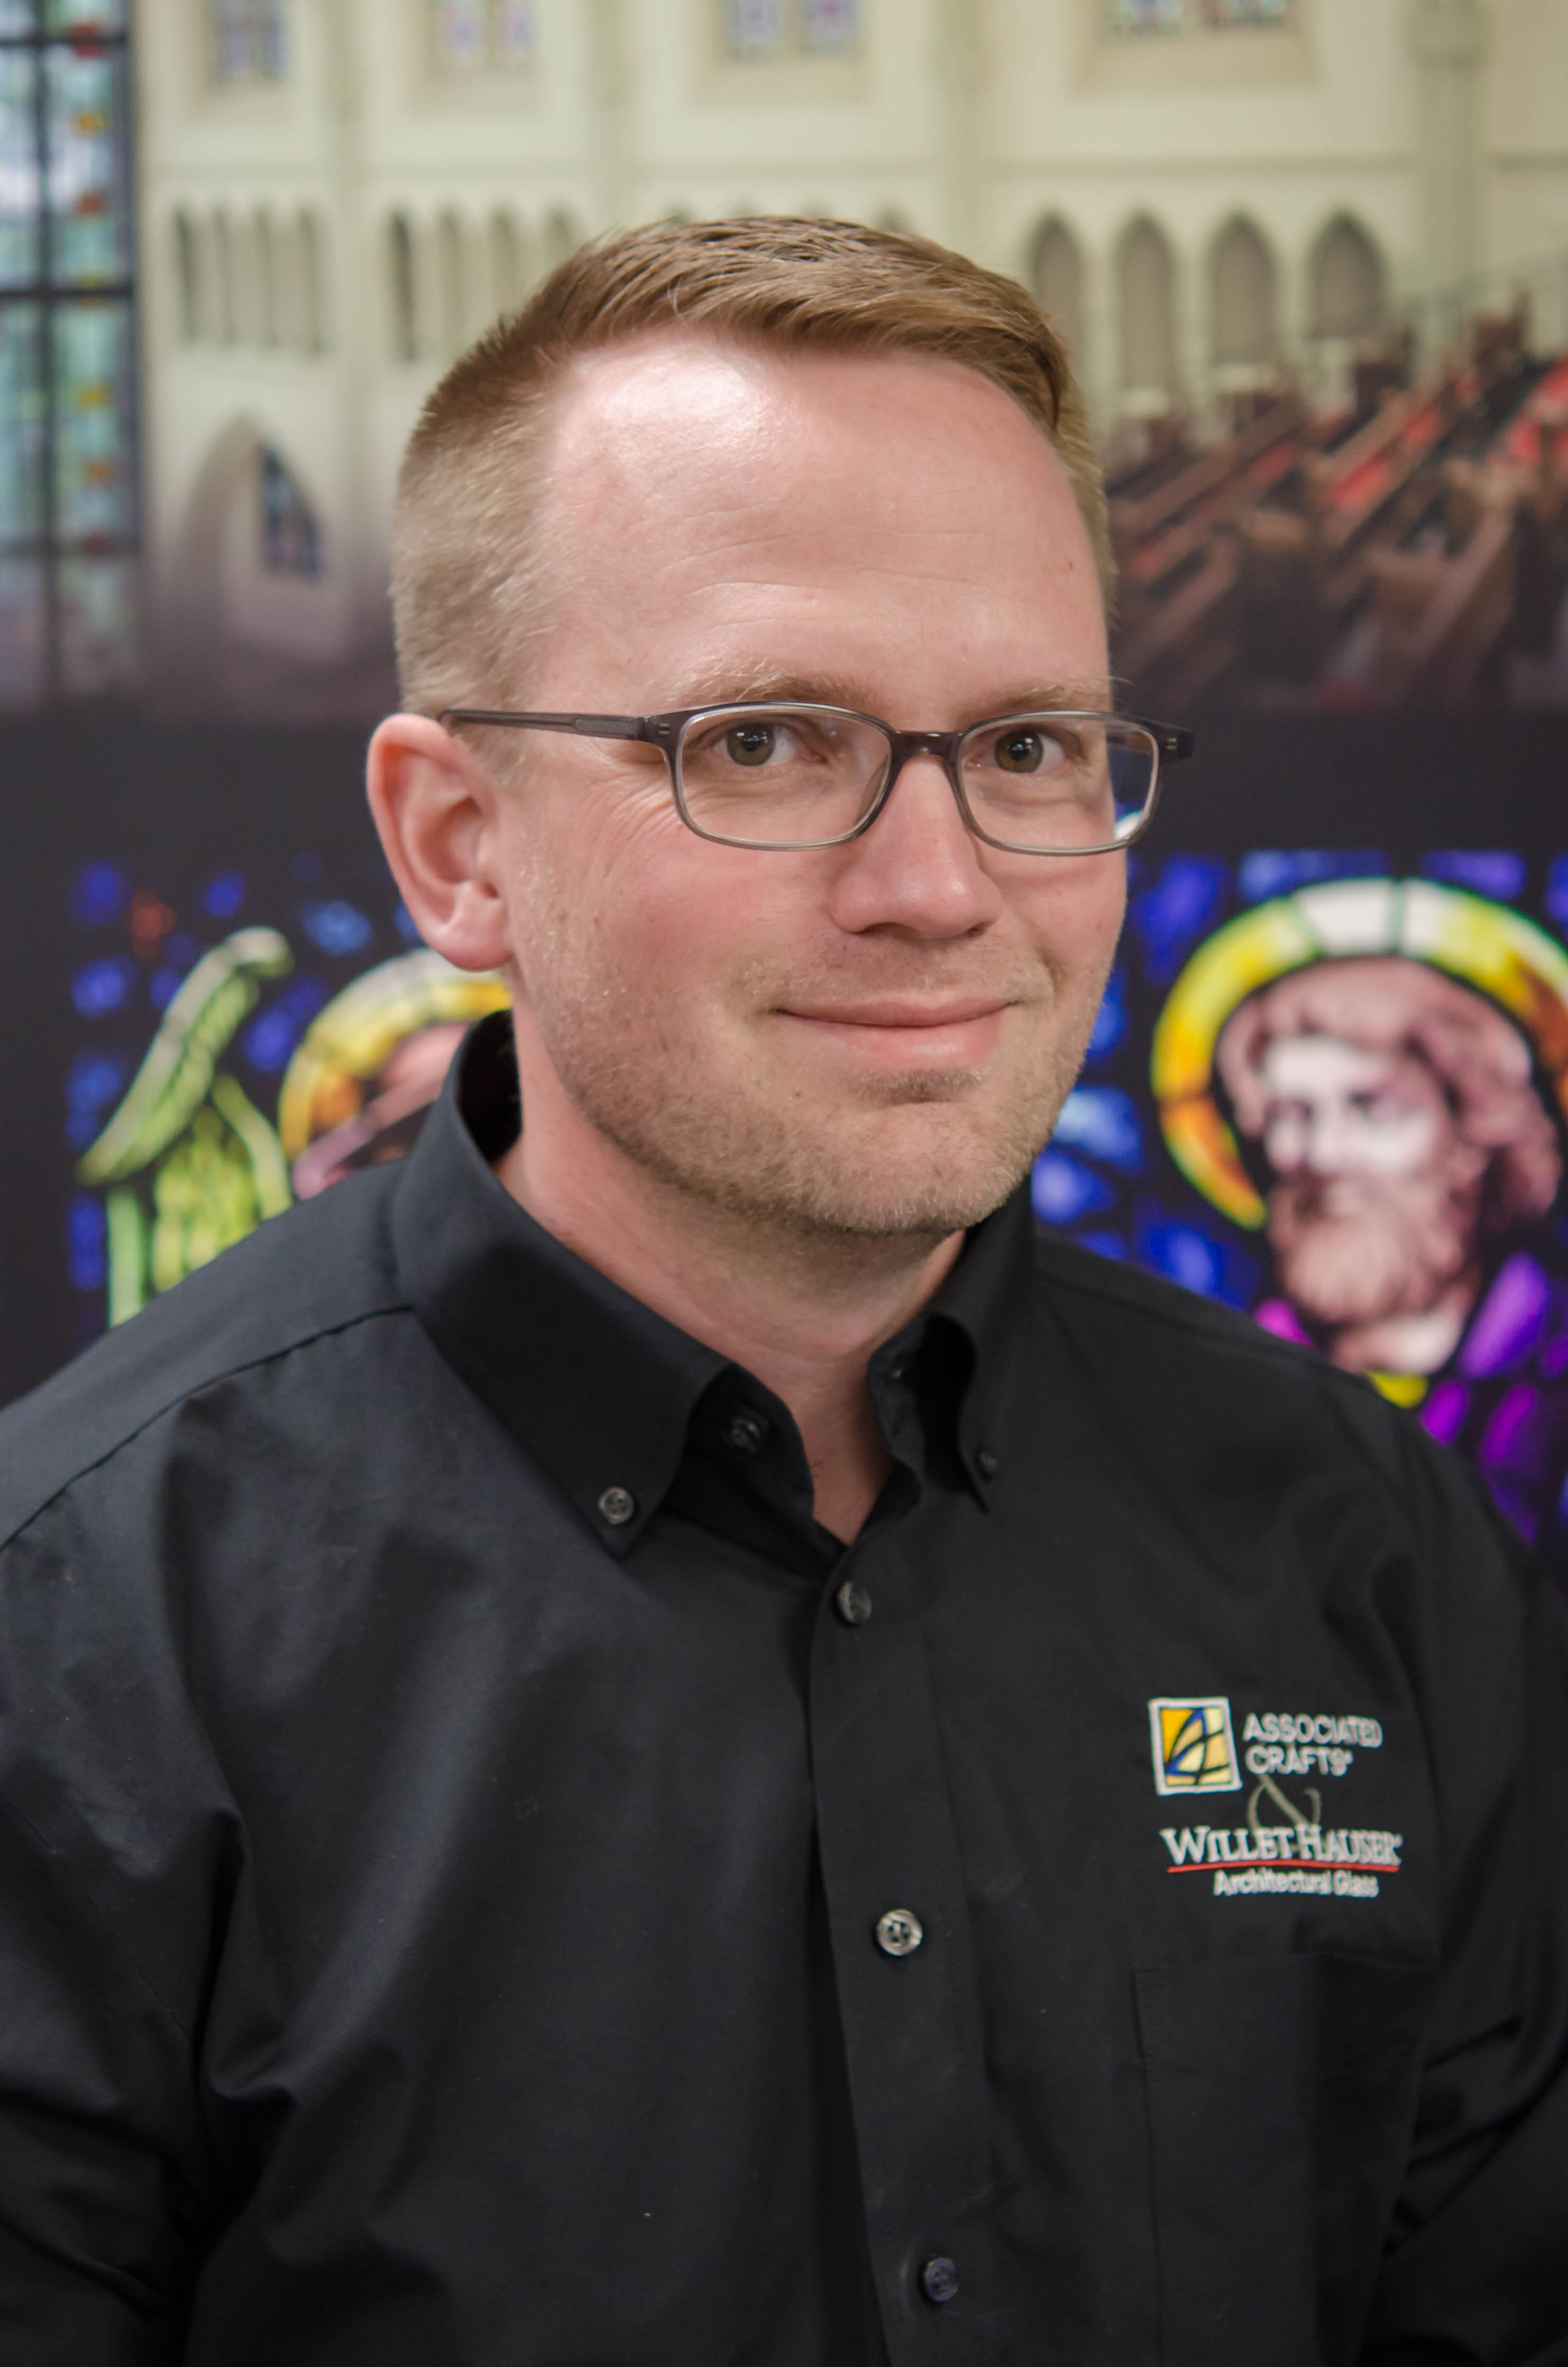 Garrick Holey, Stained Glass Artist And Overseer Of Studio Operations At Willet Hauser